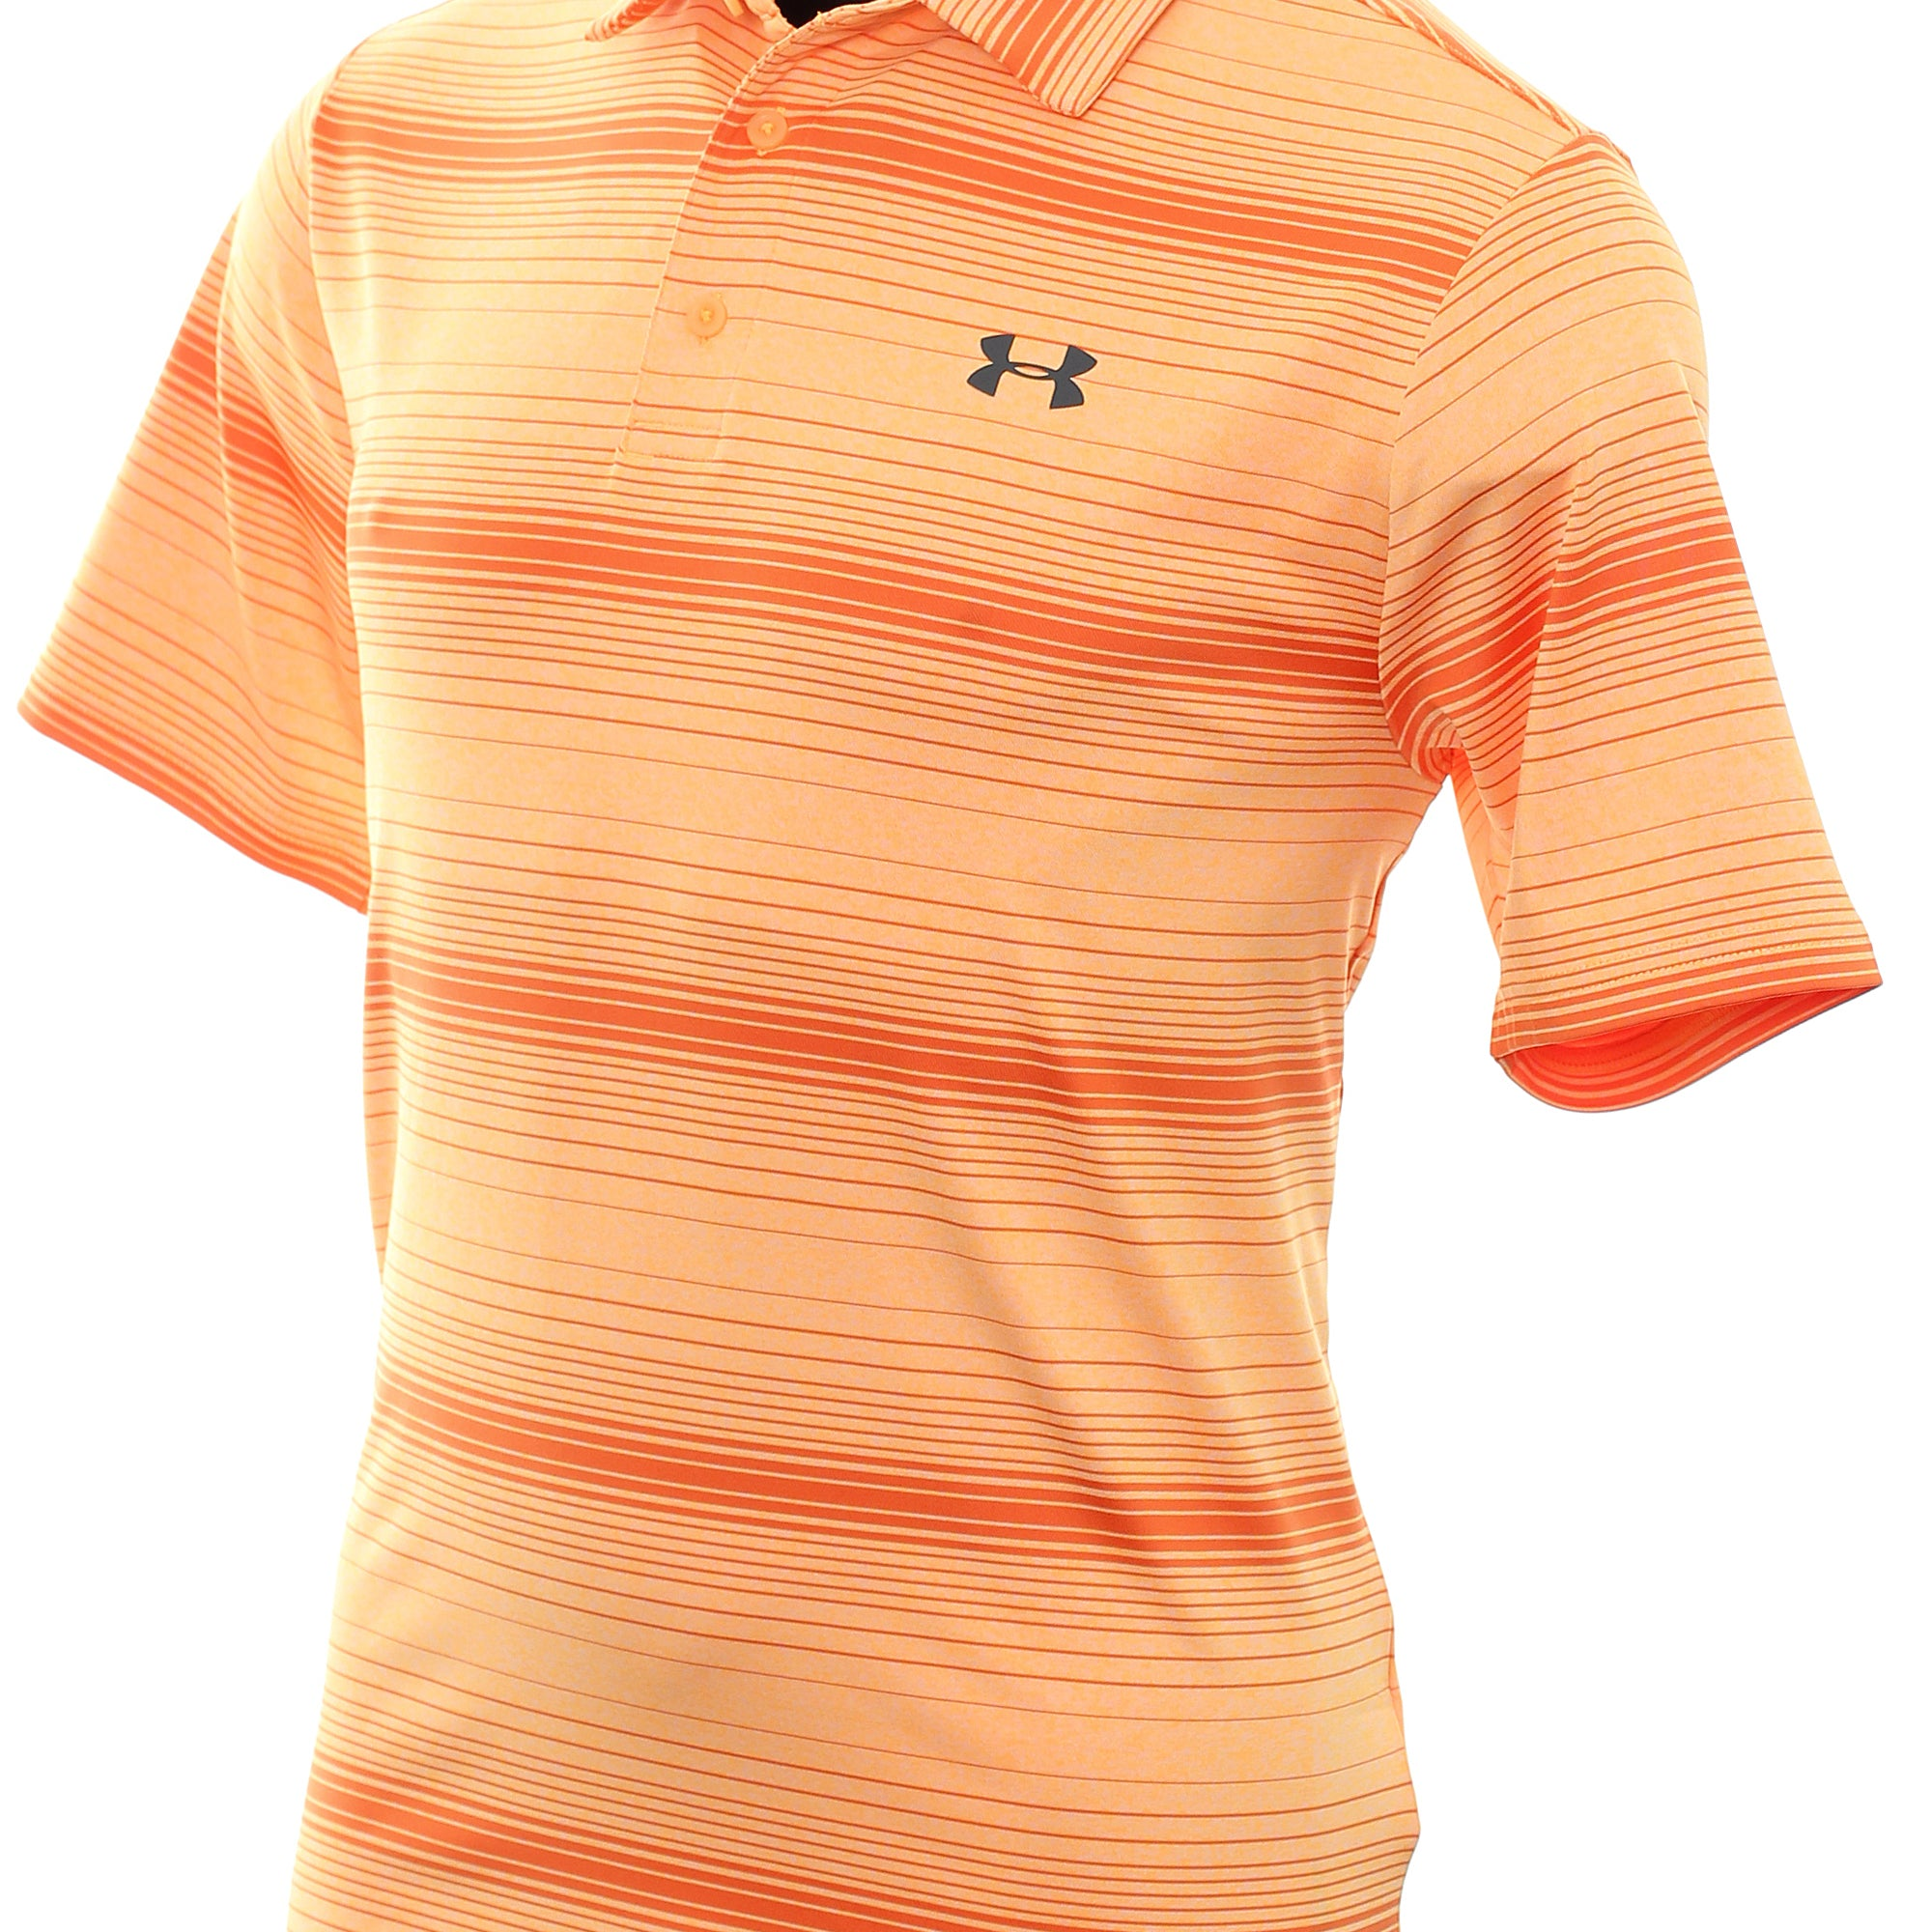 Under Armour Golf UA Playoff 2.0 Shirt 1327037